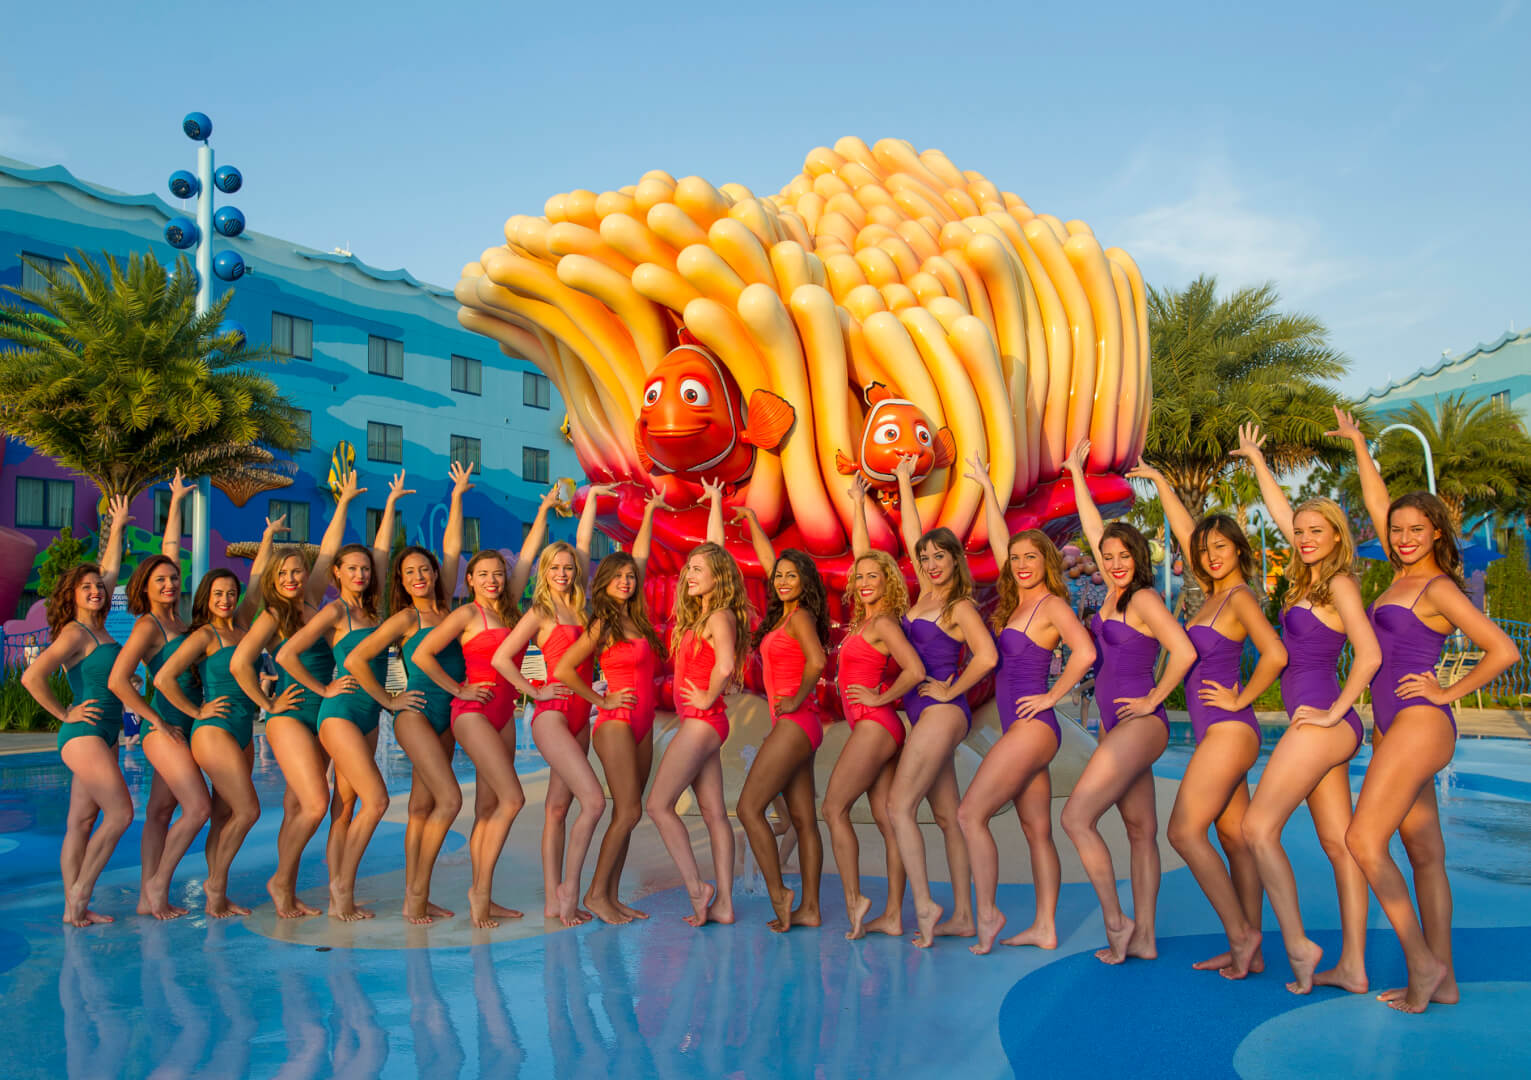 Photo Aqualillies Water Ballet Performs In Big Blue Pool At Disney S Art Of Animation Resort In